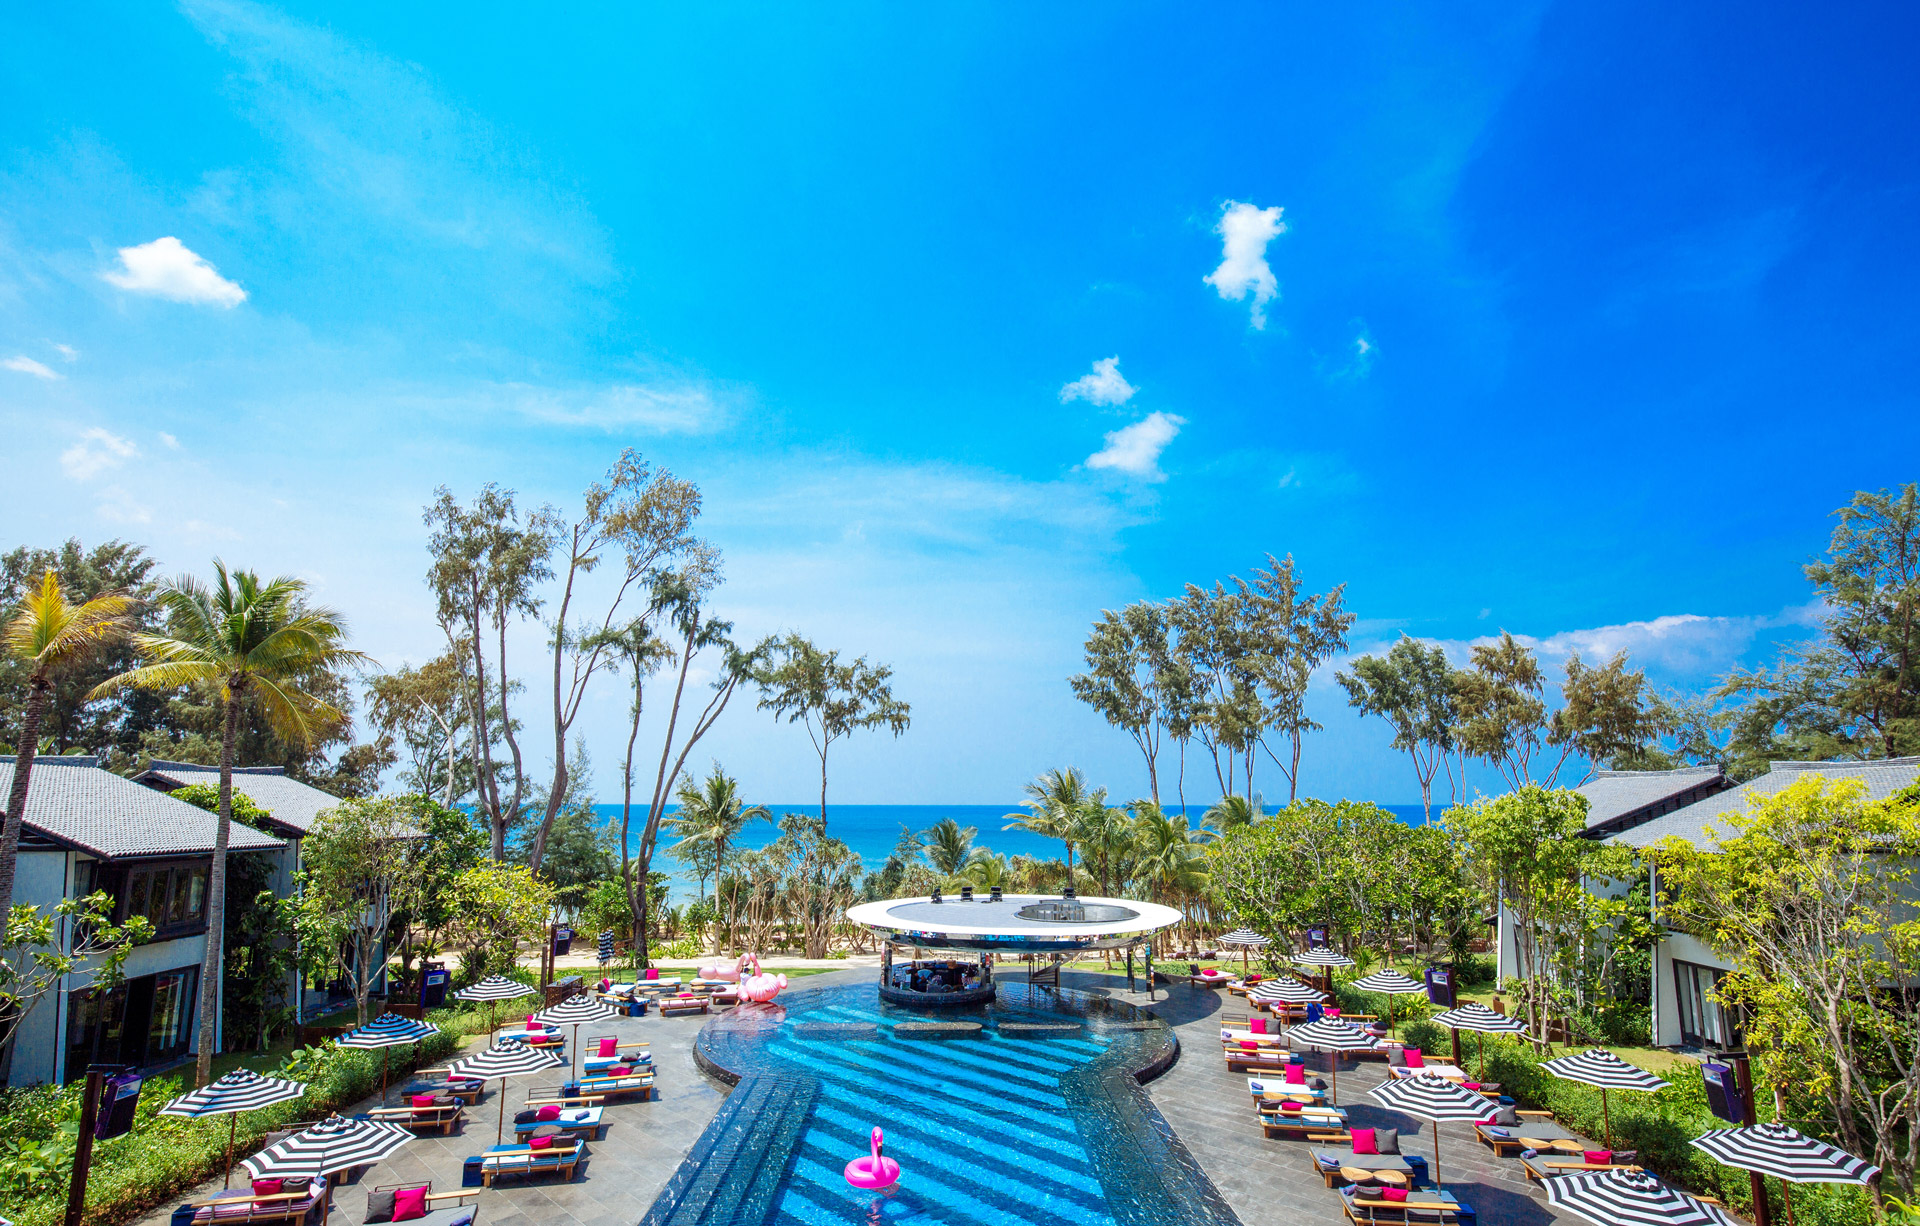 Baba Beach Club Phuket Luxury Hotel Phuket